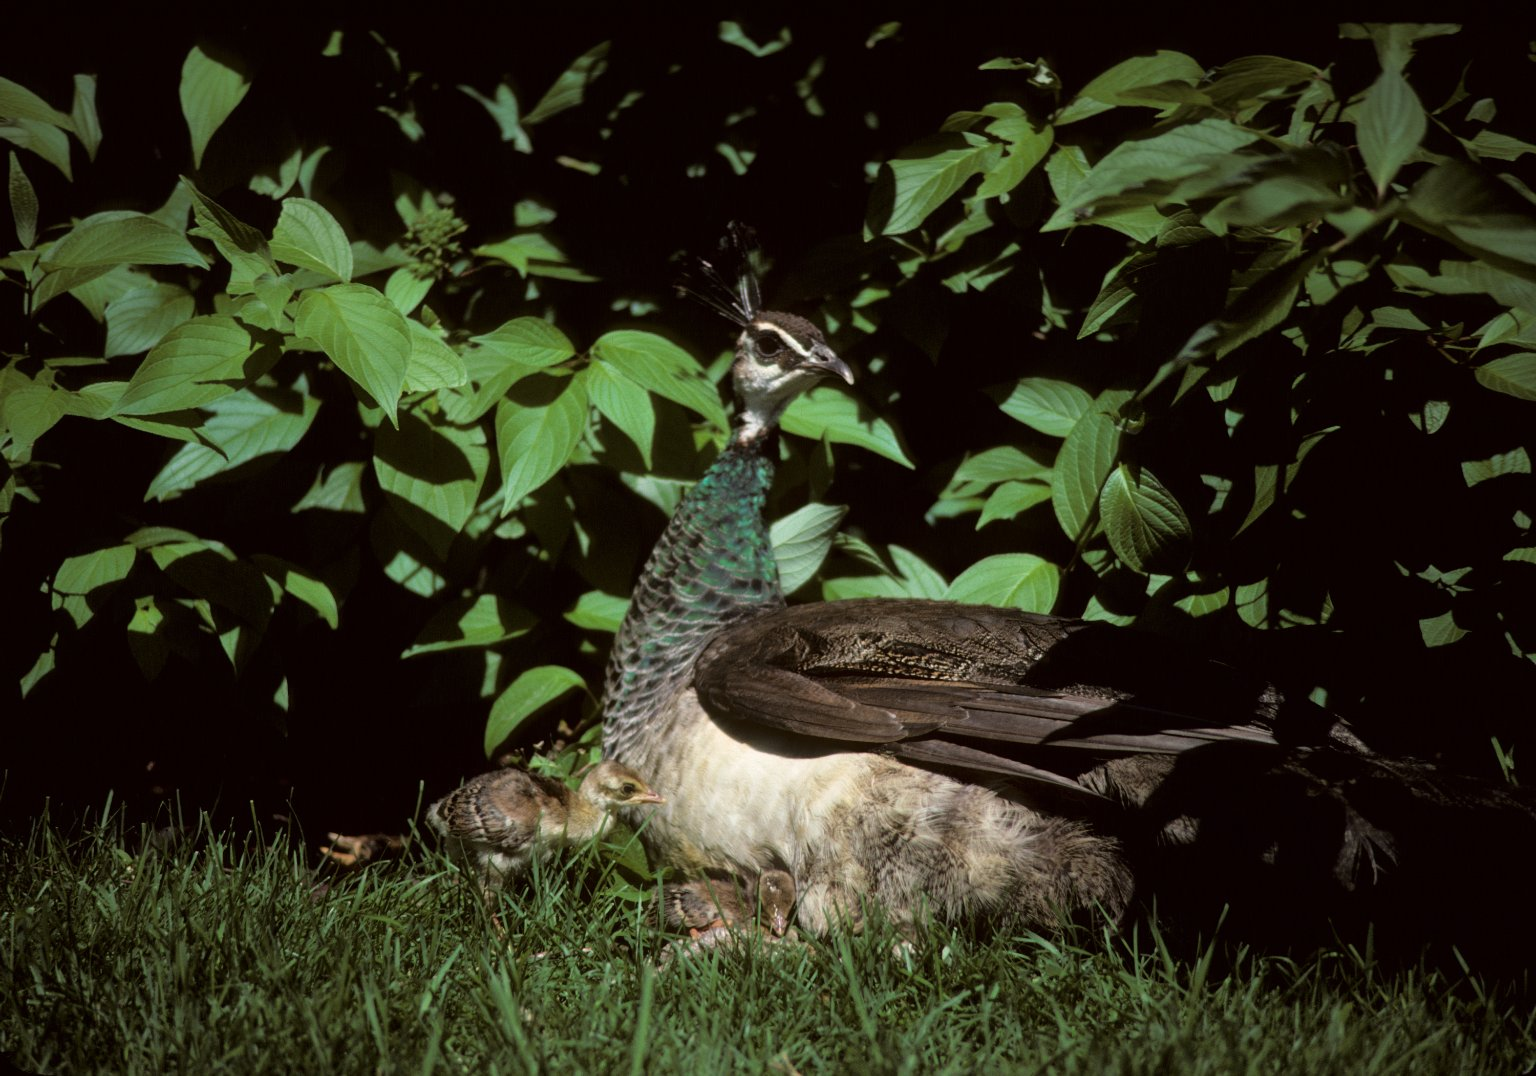 Indian Peafowl, also called Common Peafowl or Peacock